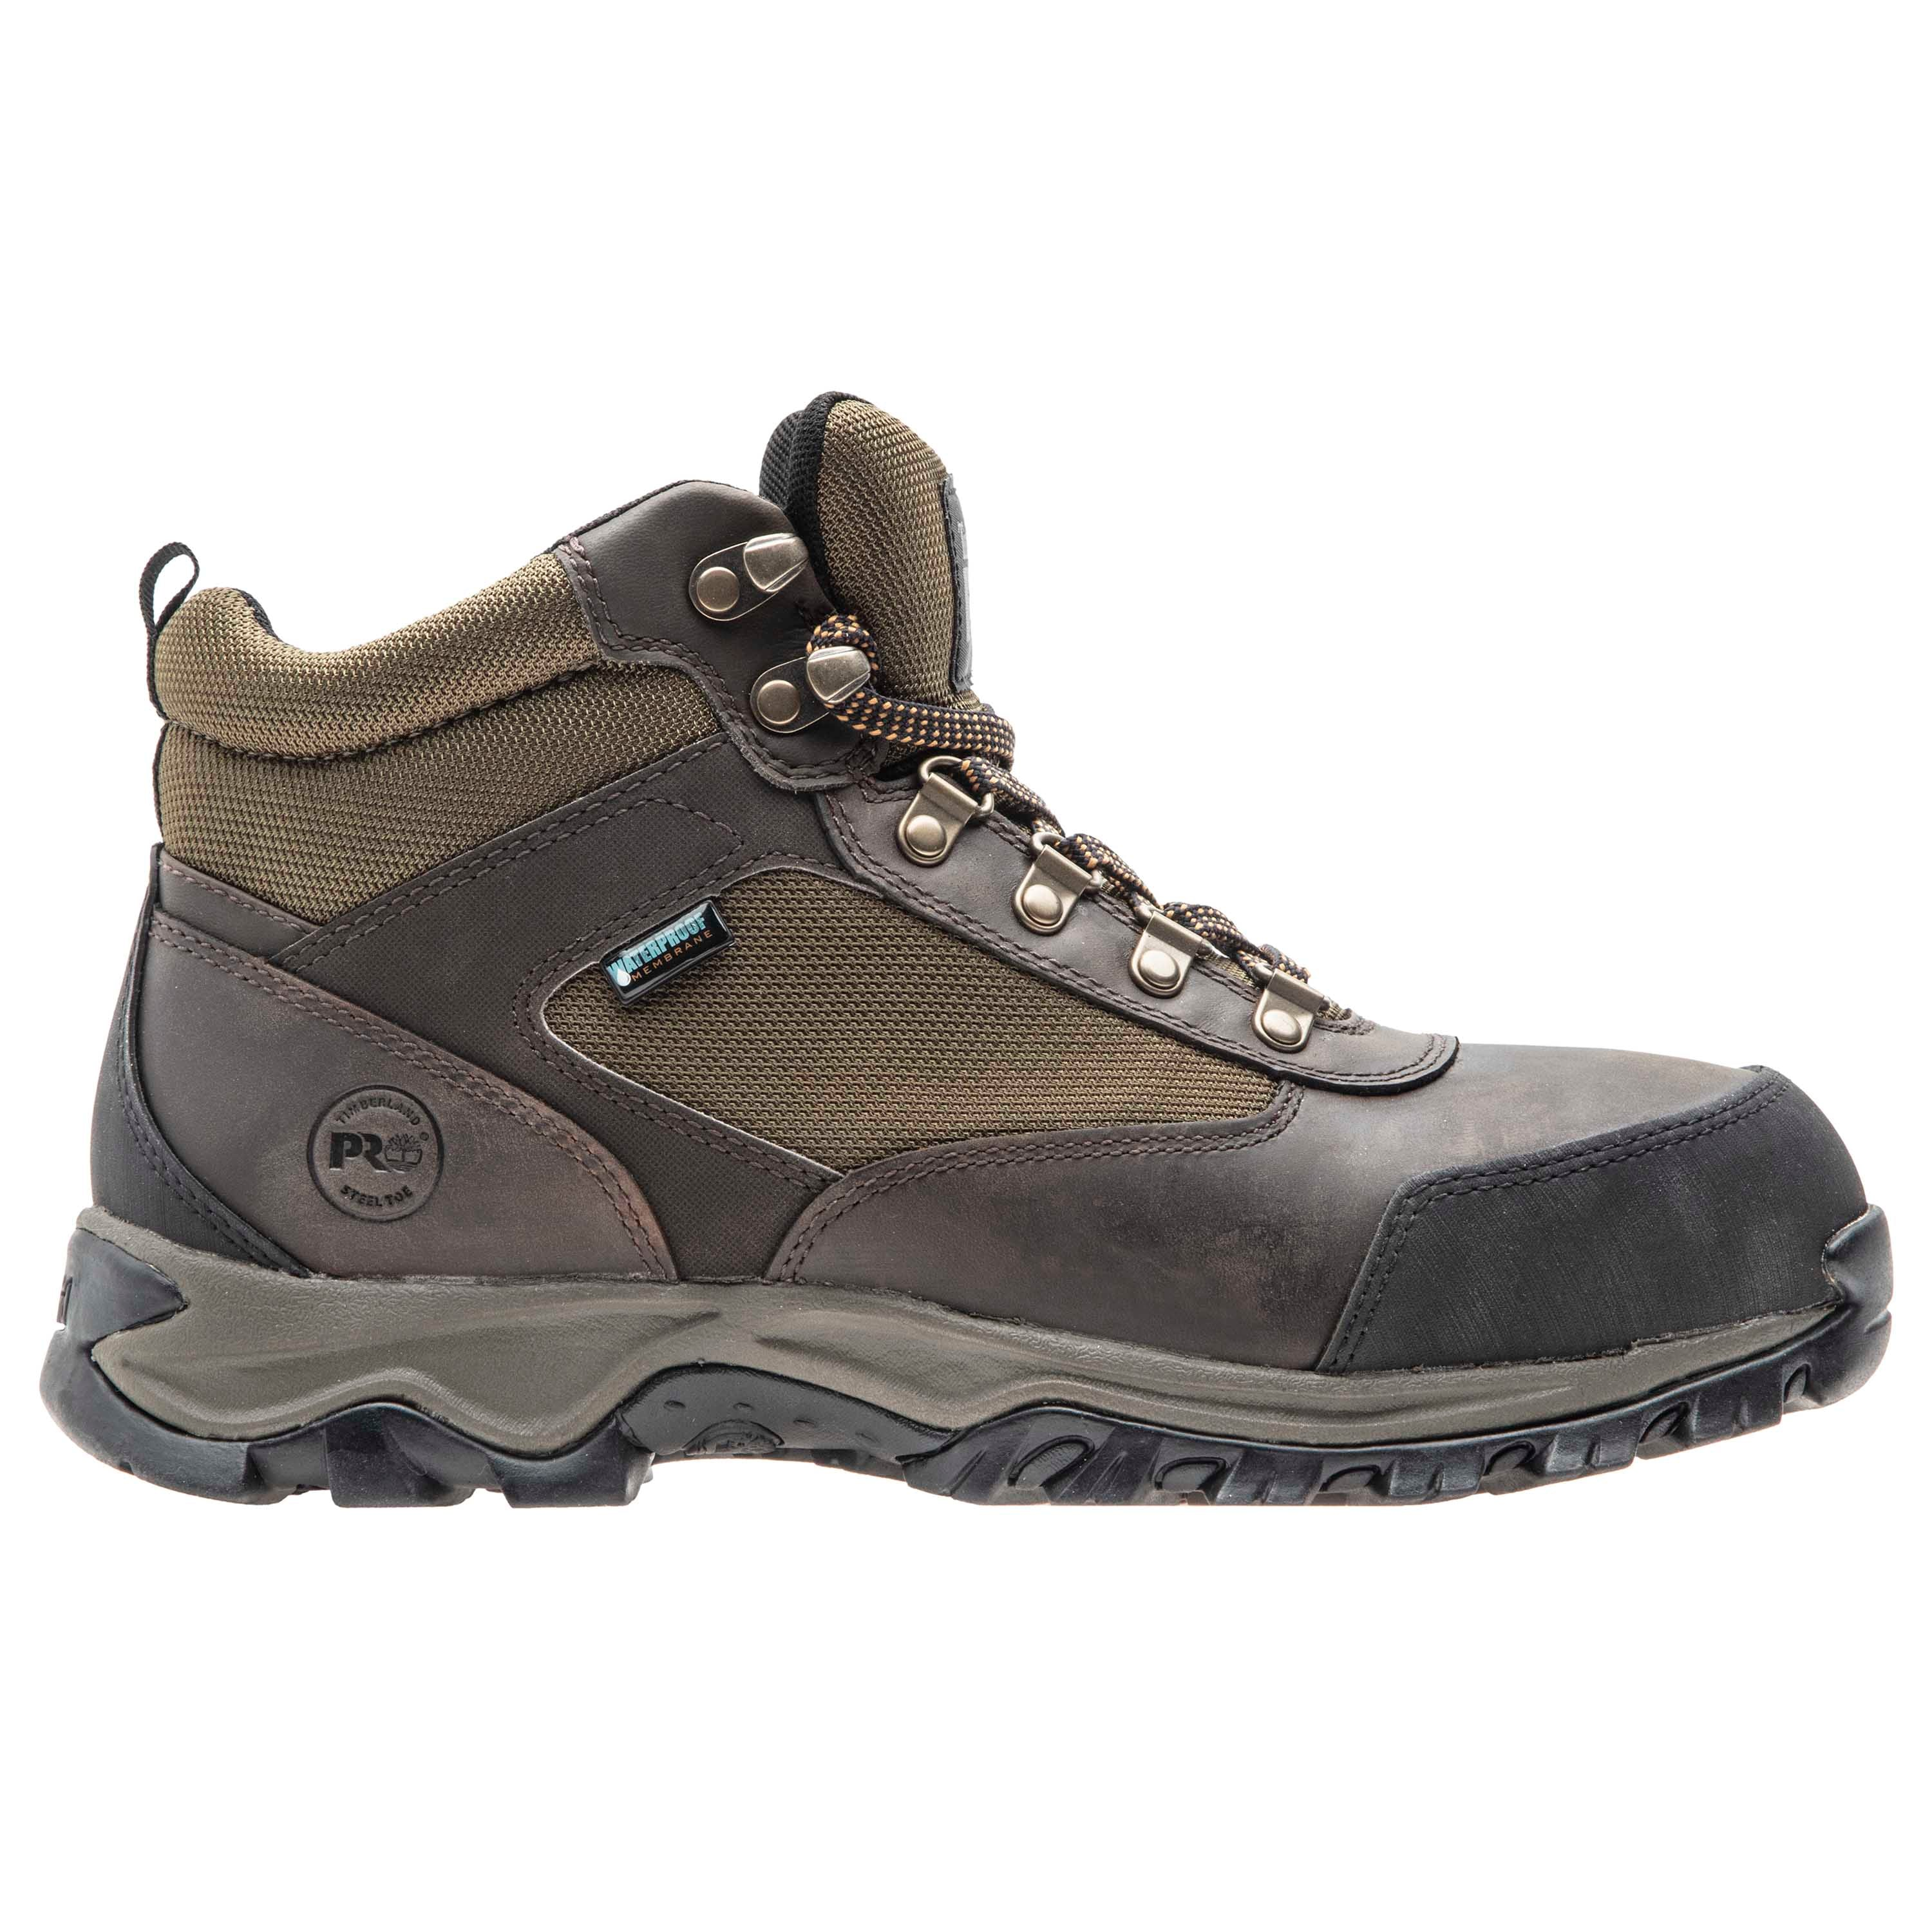 Keele Ridge Steel Toe Waterproof Boot - Brown / Green